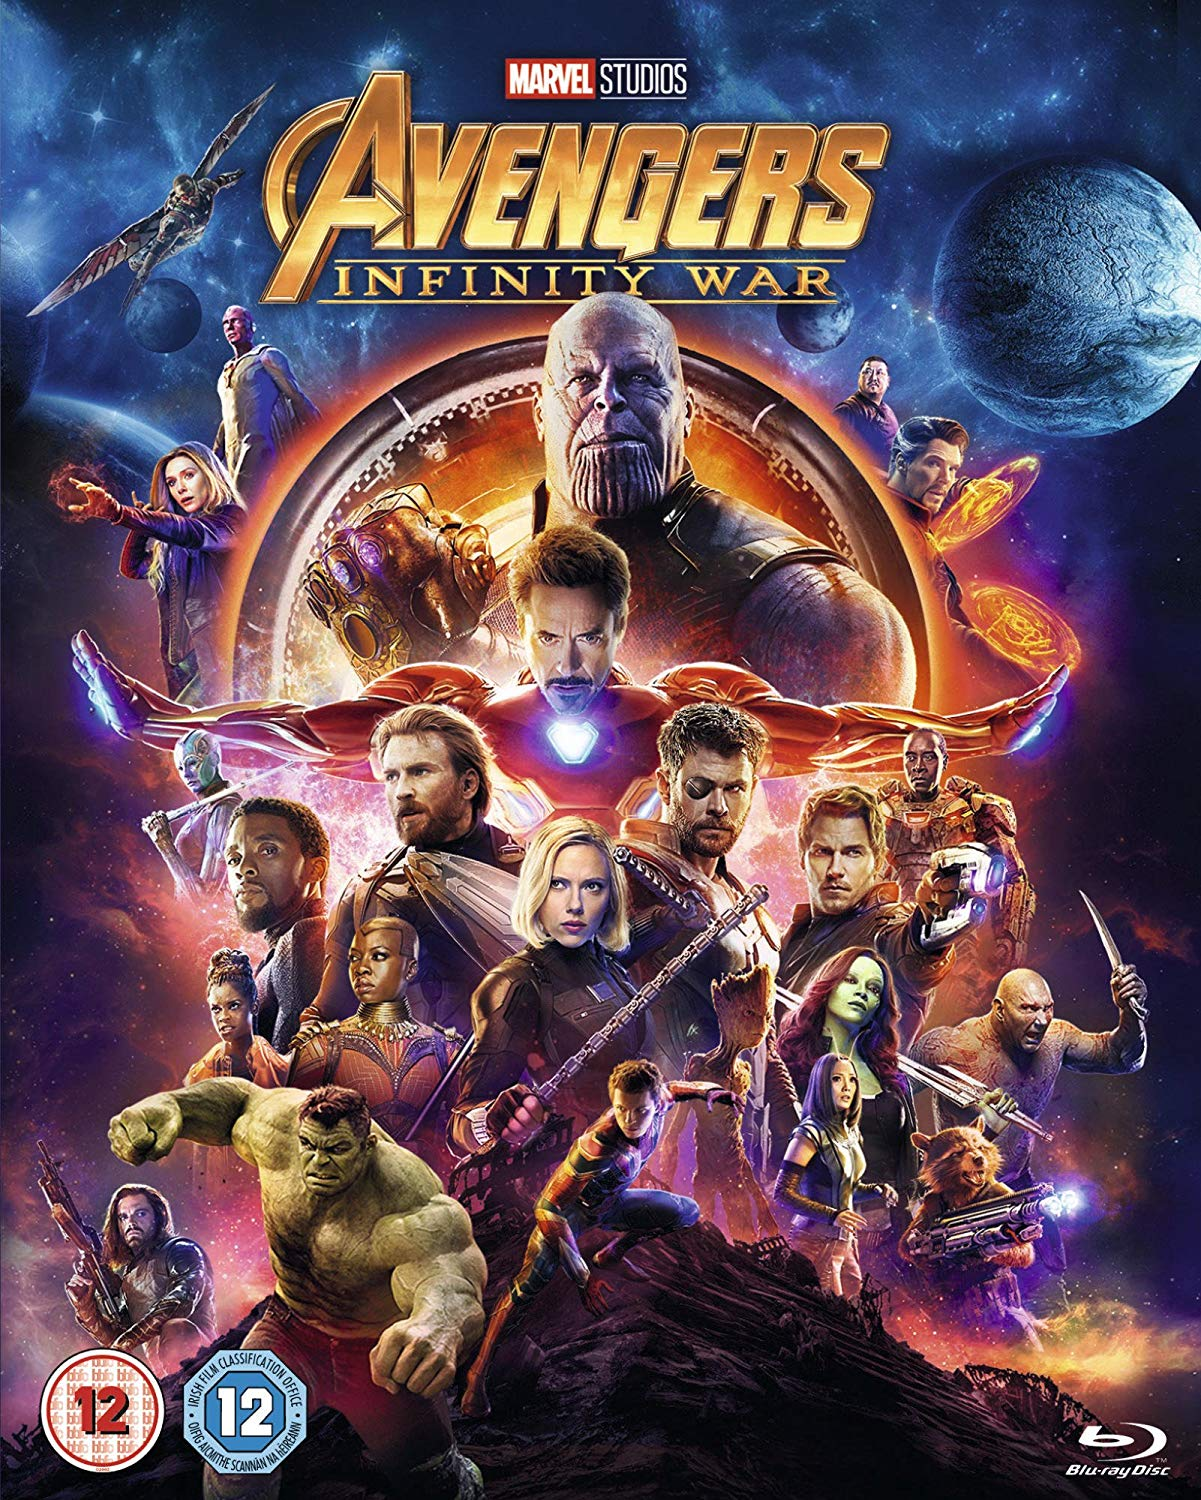 Avengers: Infinity War - Anthony Russo [BLU-RAY]